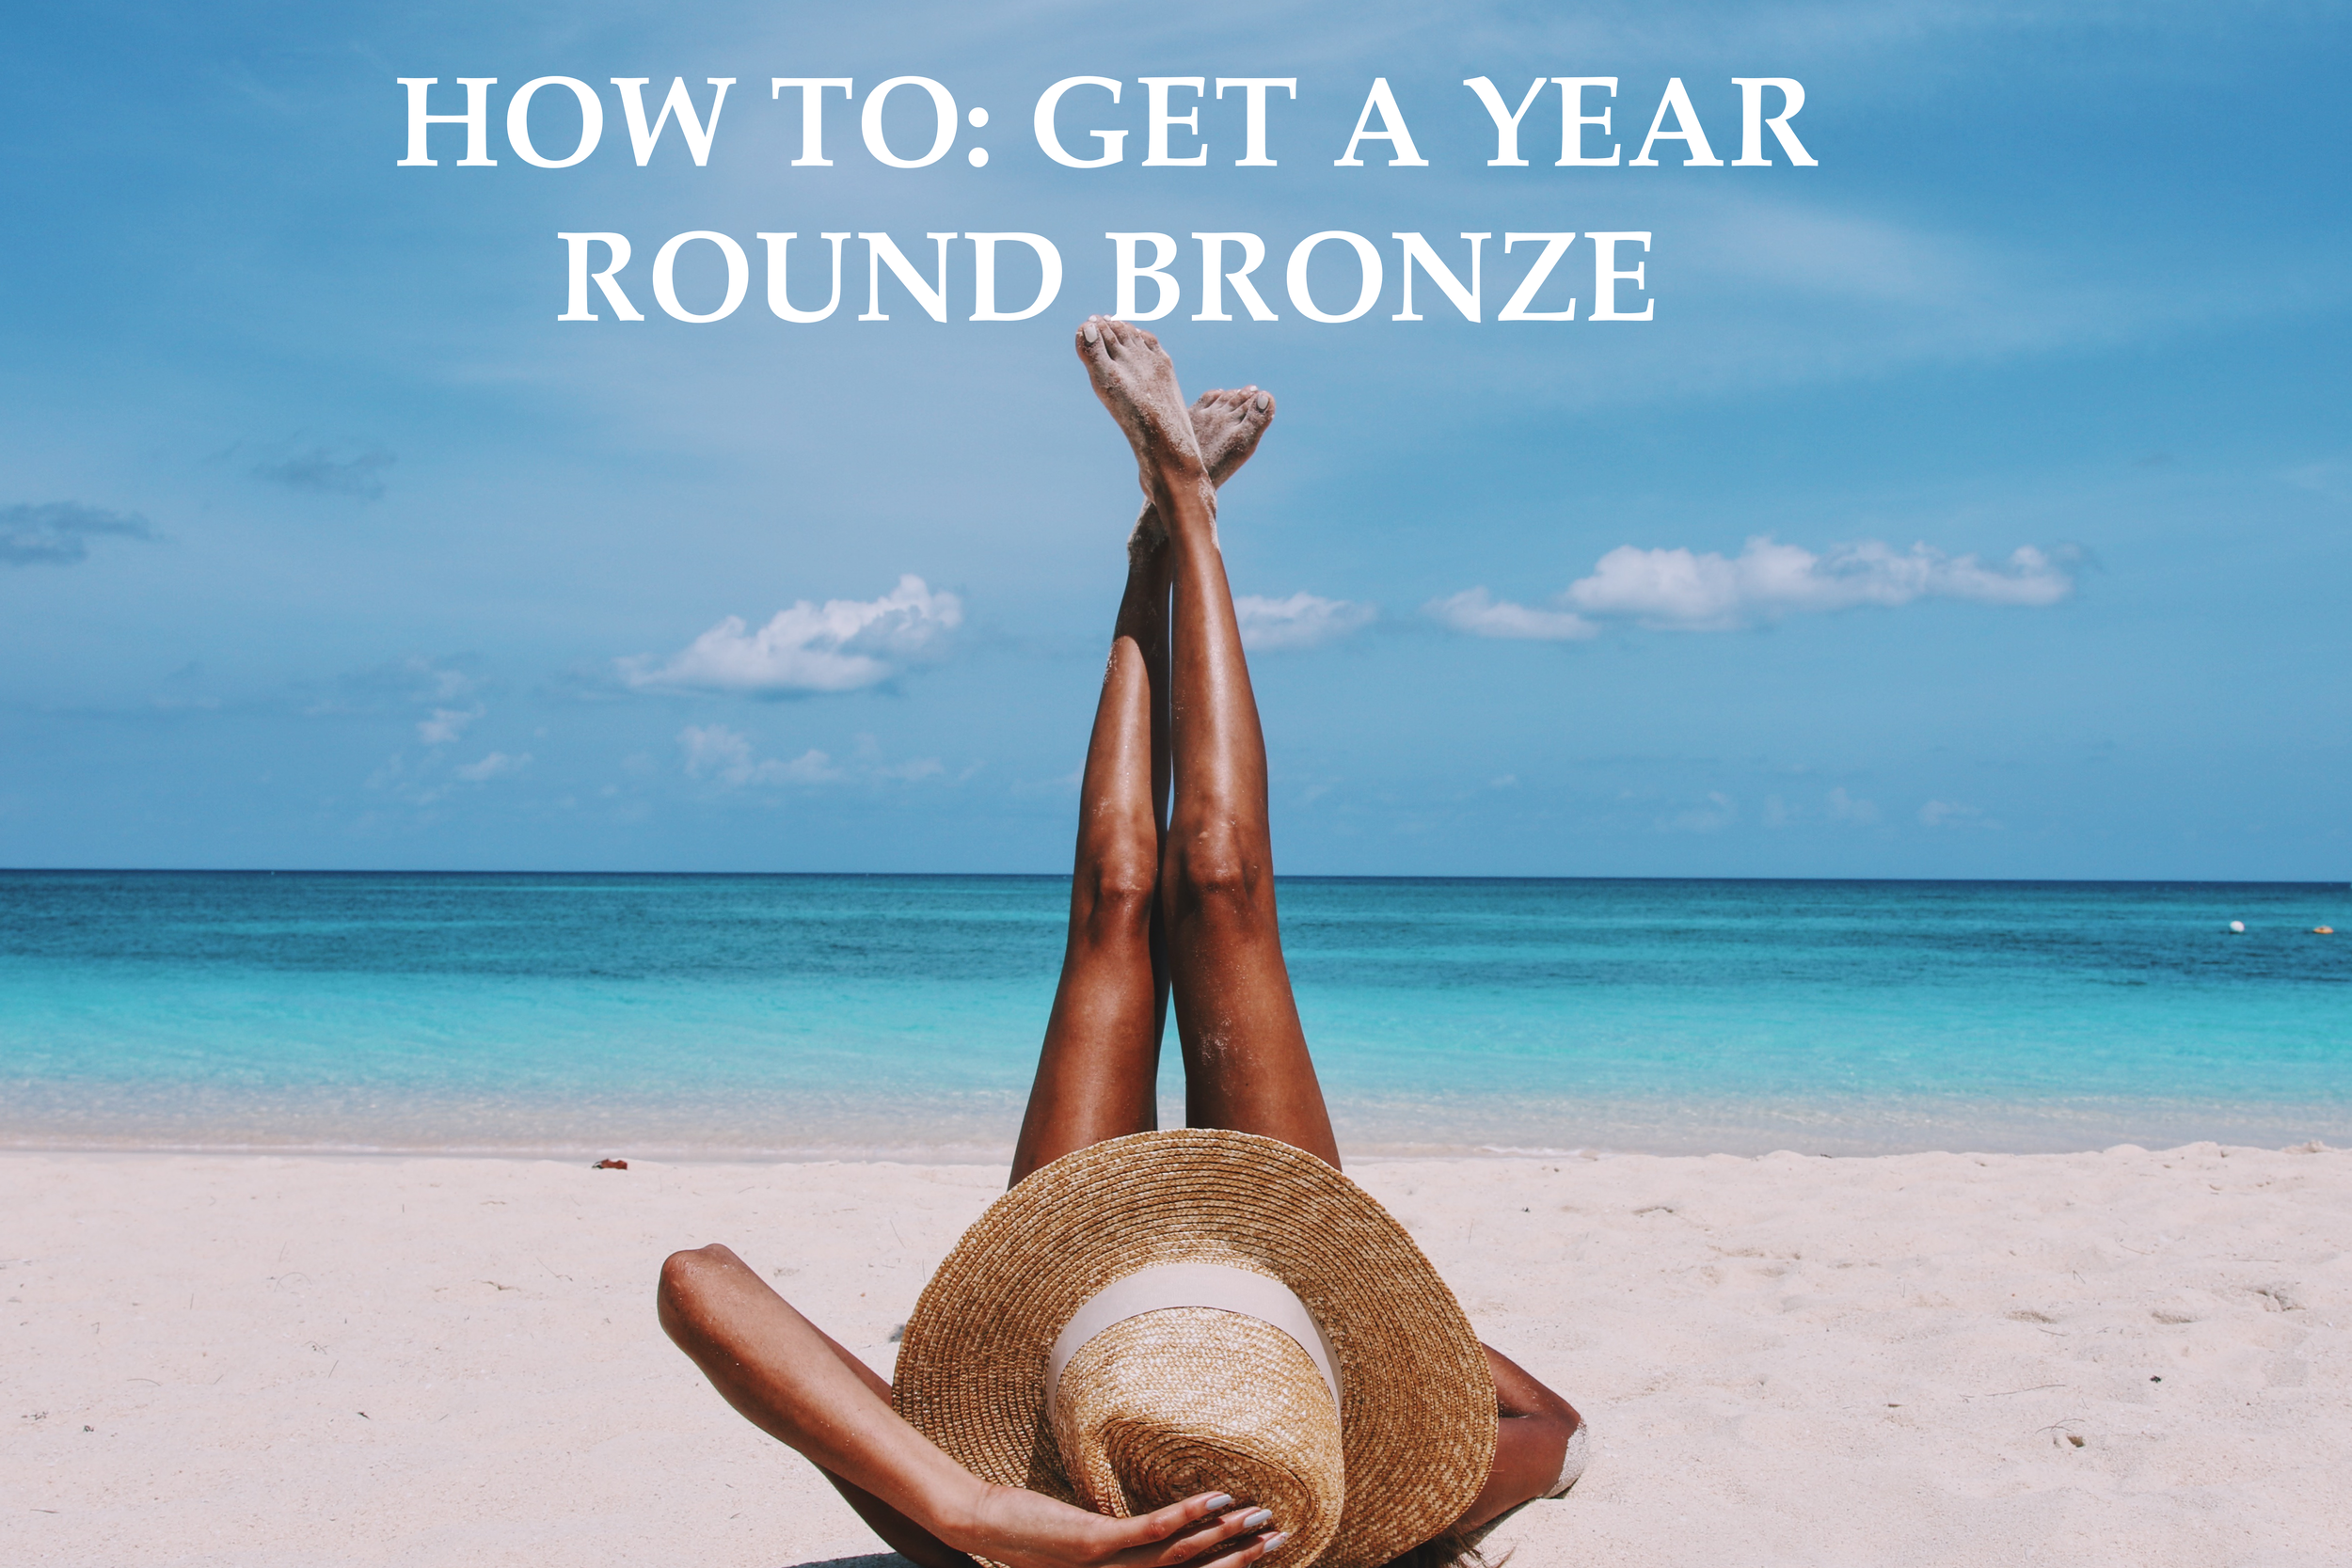 How to stay bronze year round